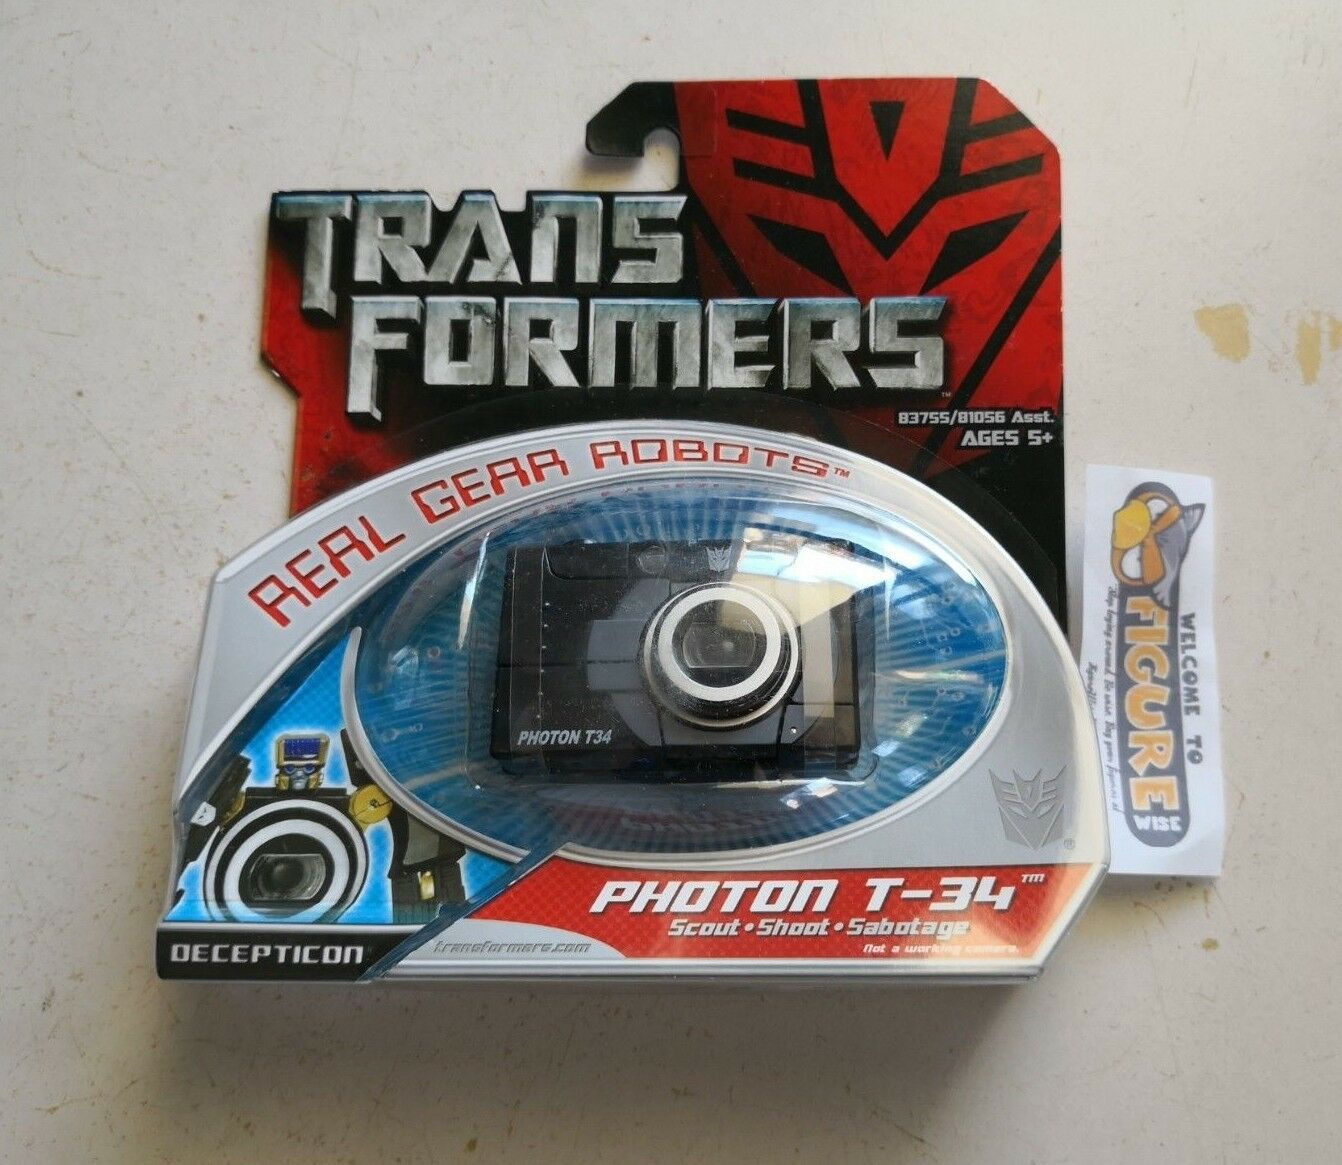 TransFormers Movie, Real Gear Robots Decepticon PHOTON T-34 action figure